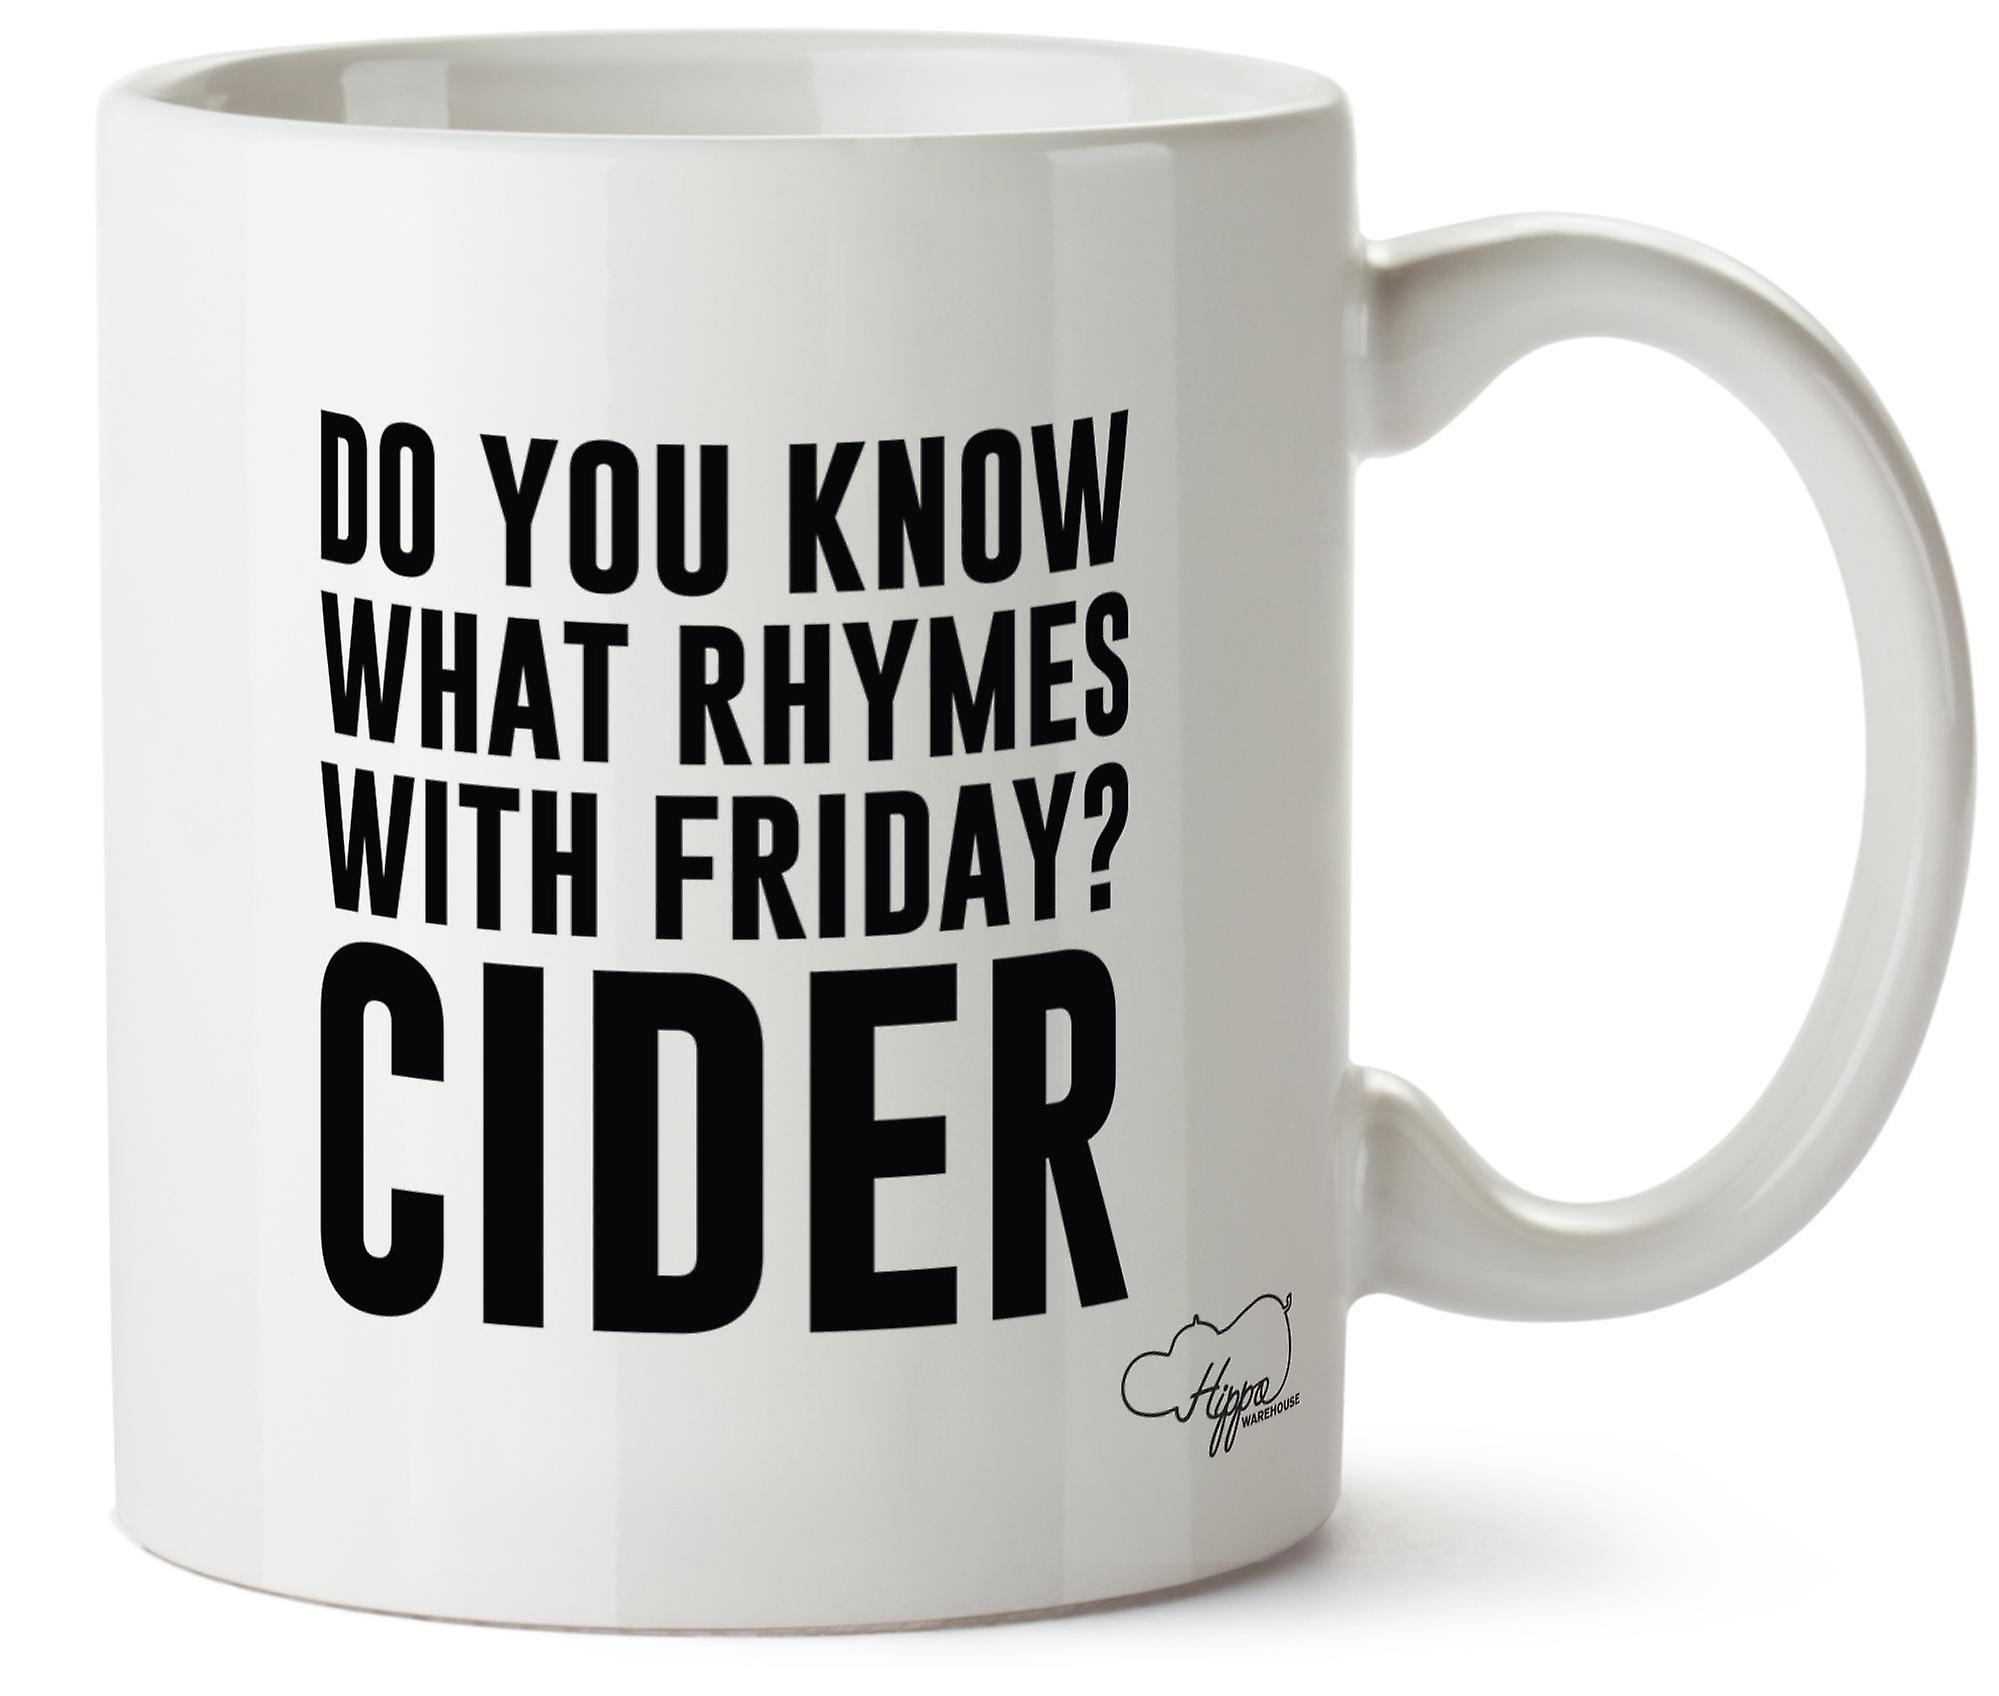 Hippowarehouse Do You Know What Rhymes With Friday? Cider Printed Mug Cup Ceramic 10oz